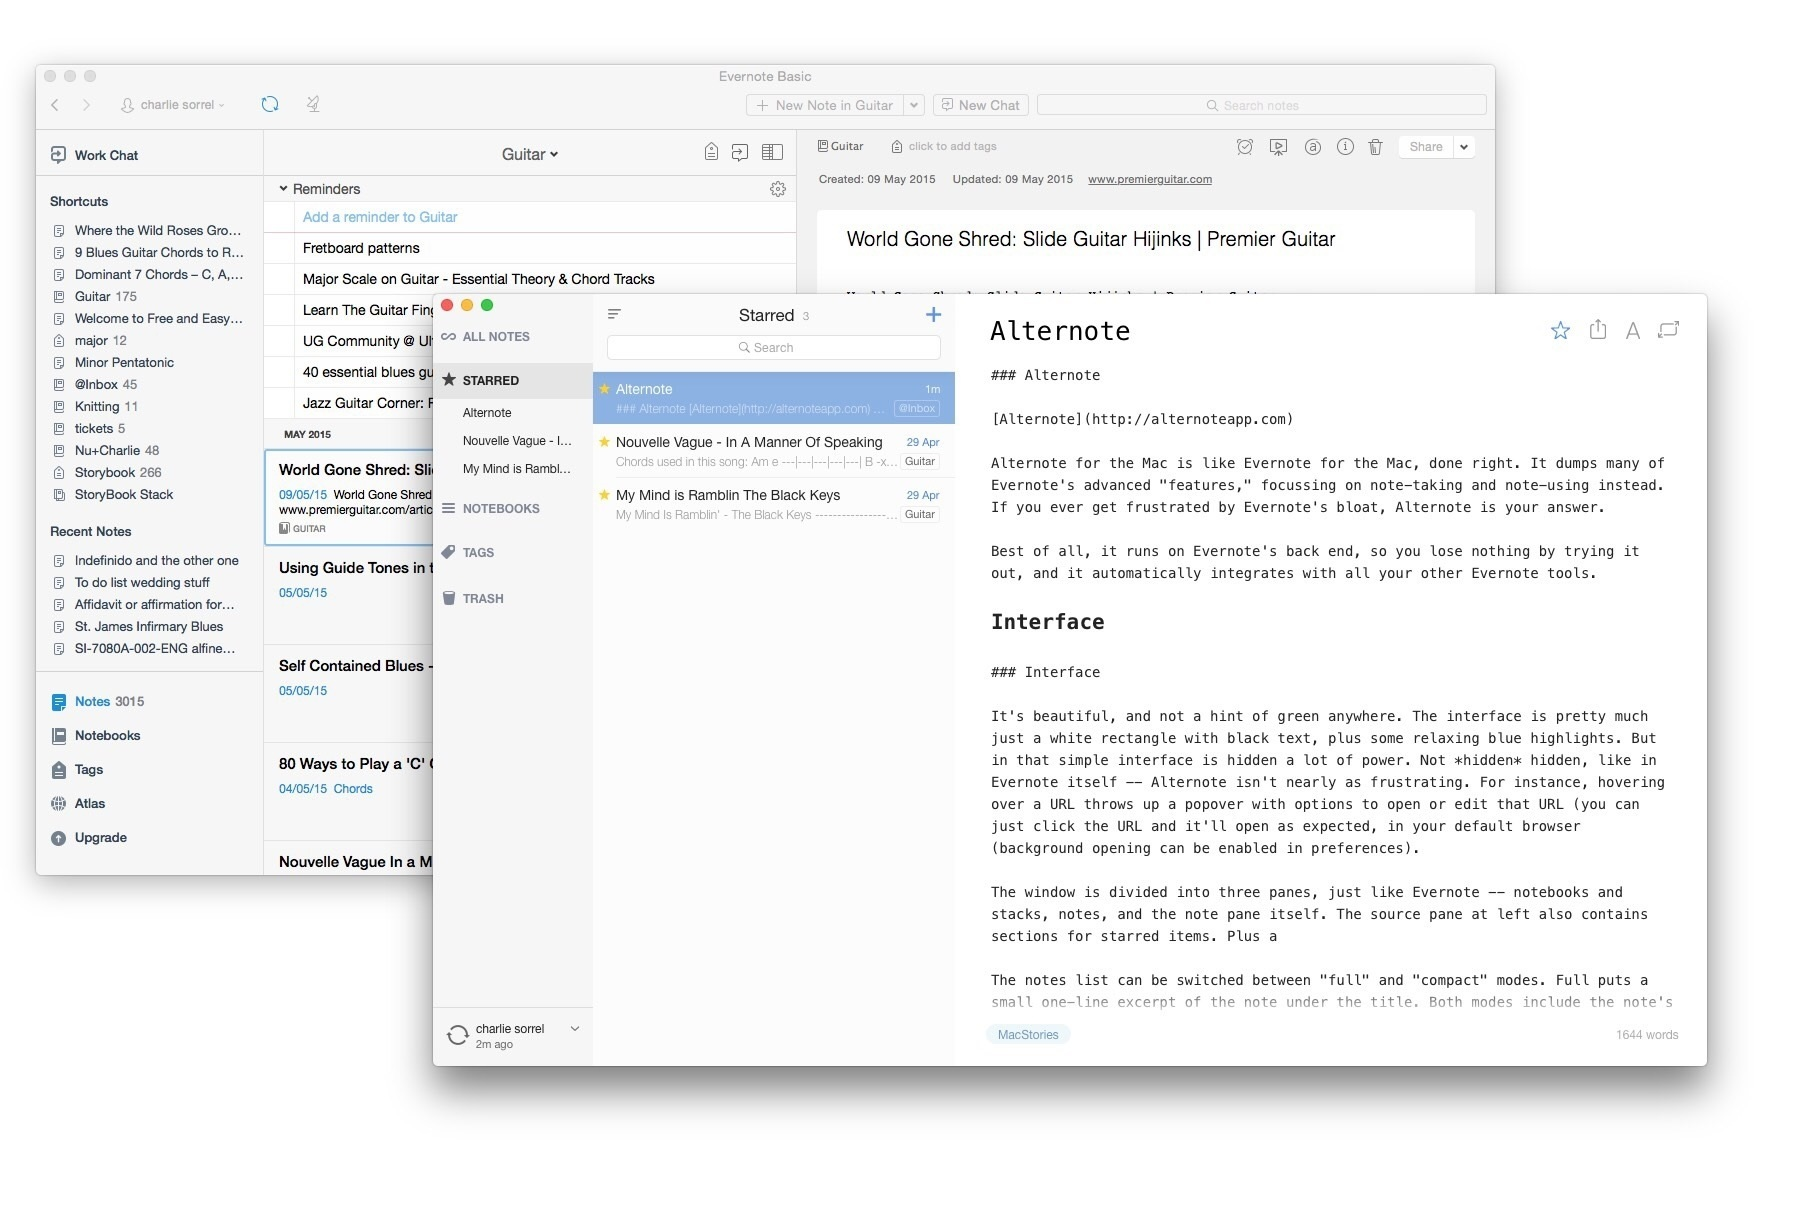 Even with Evernote's recent cleanup, Alternote is still simpler and prettier